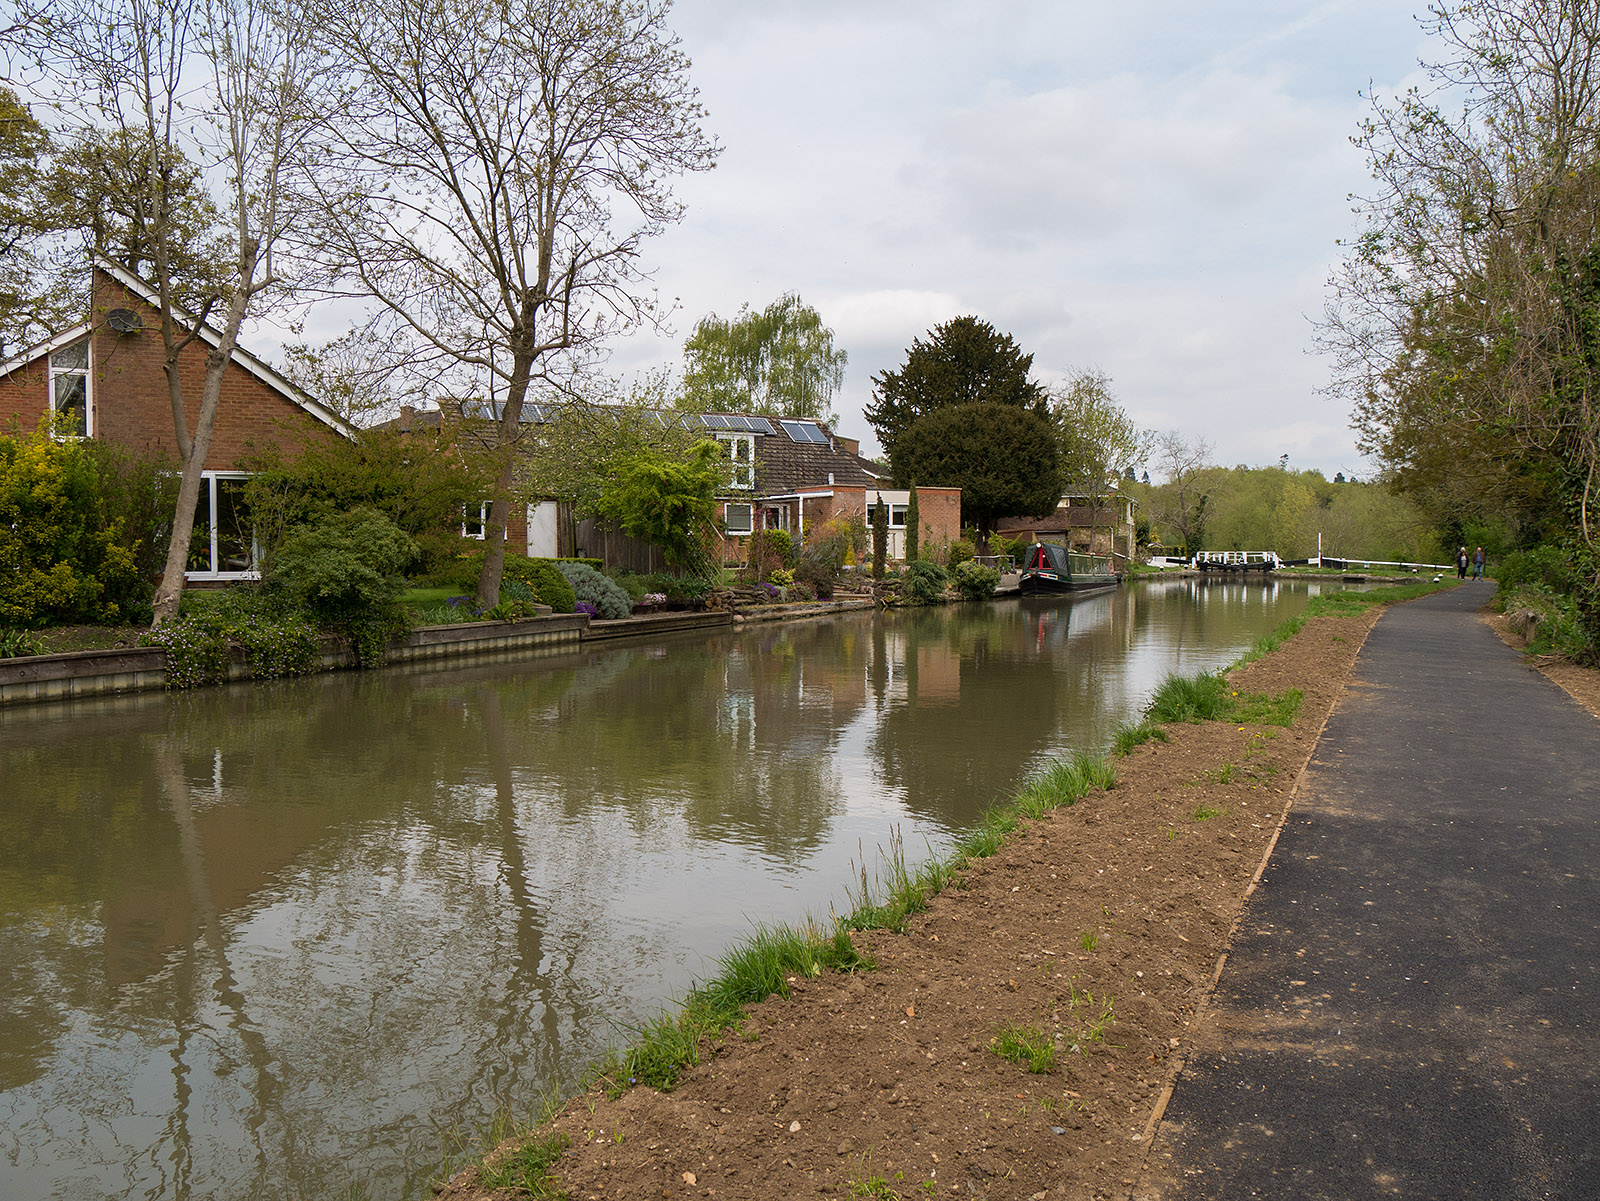 Approaching Leighton Lock